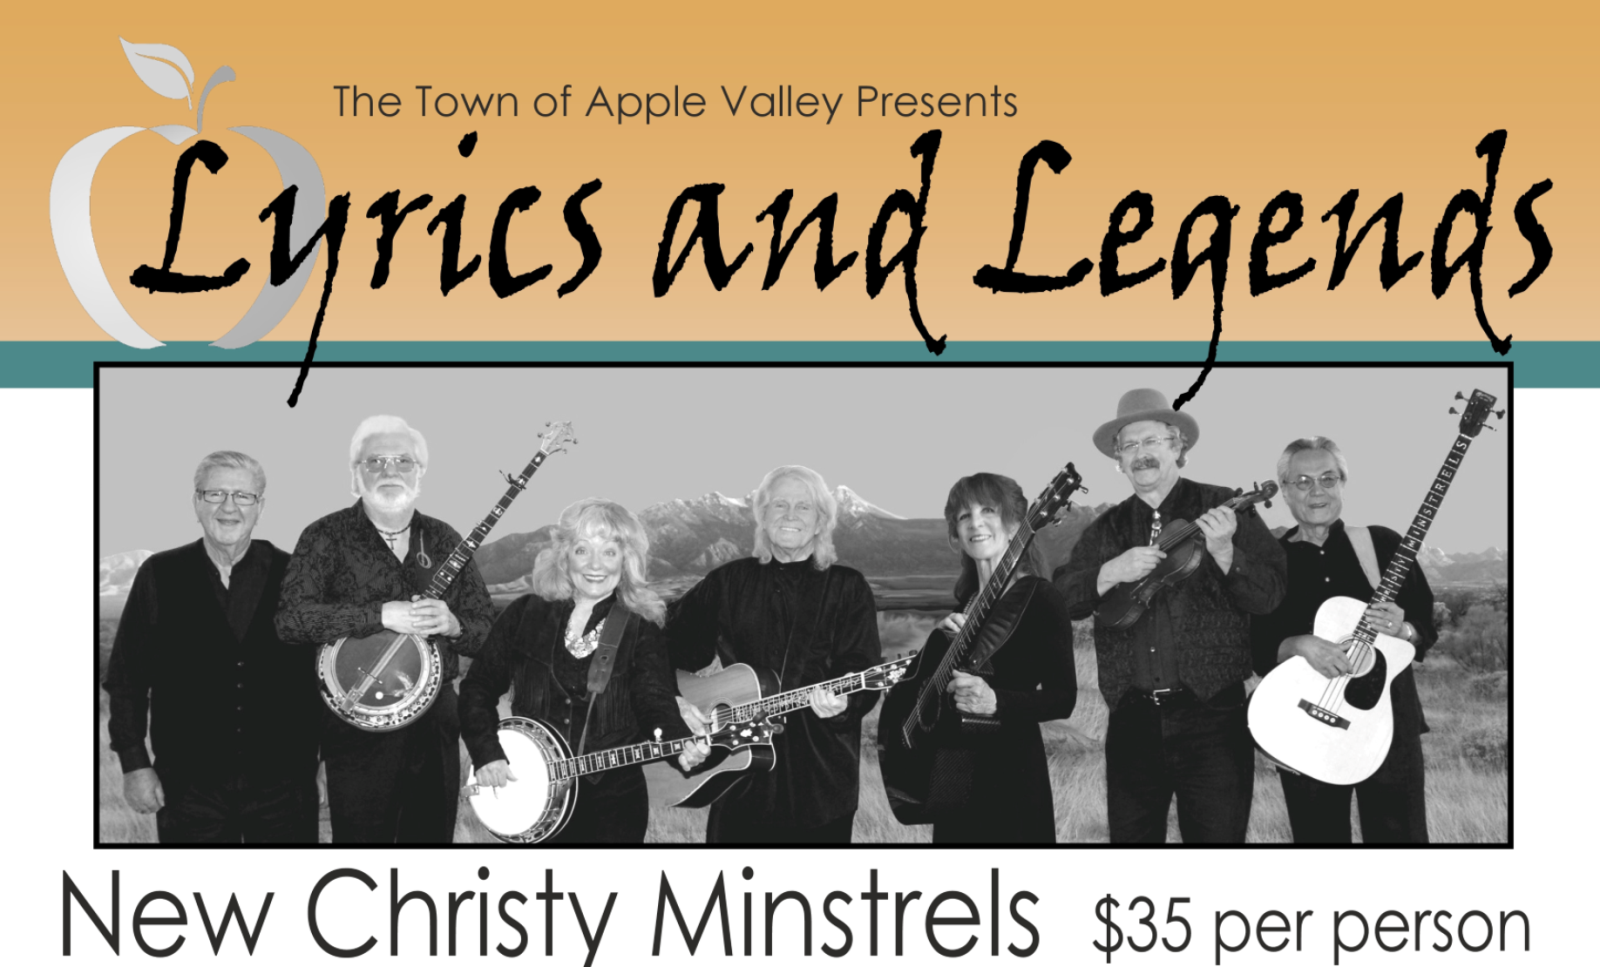 The New Christy Minstrels to perform in Apple Valley